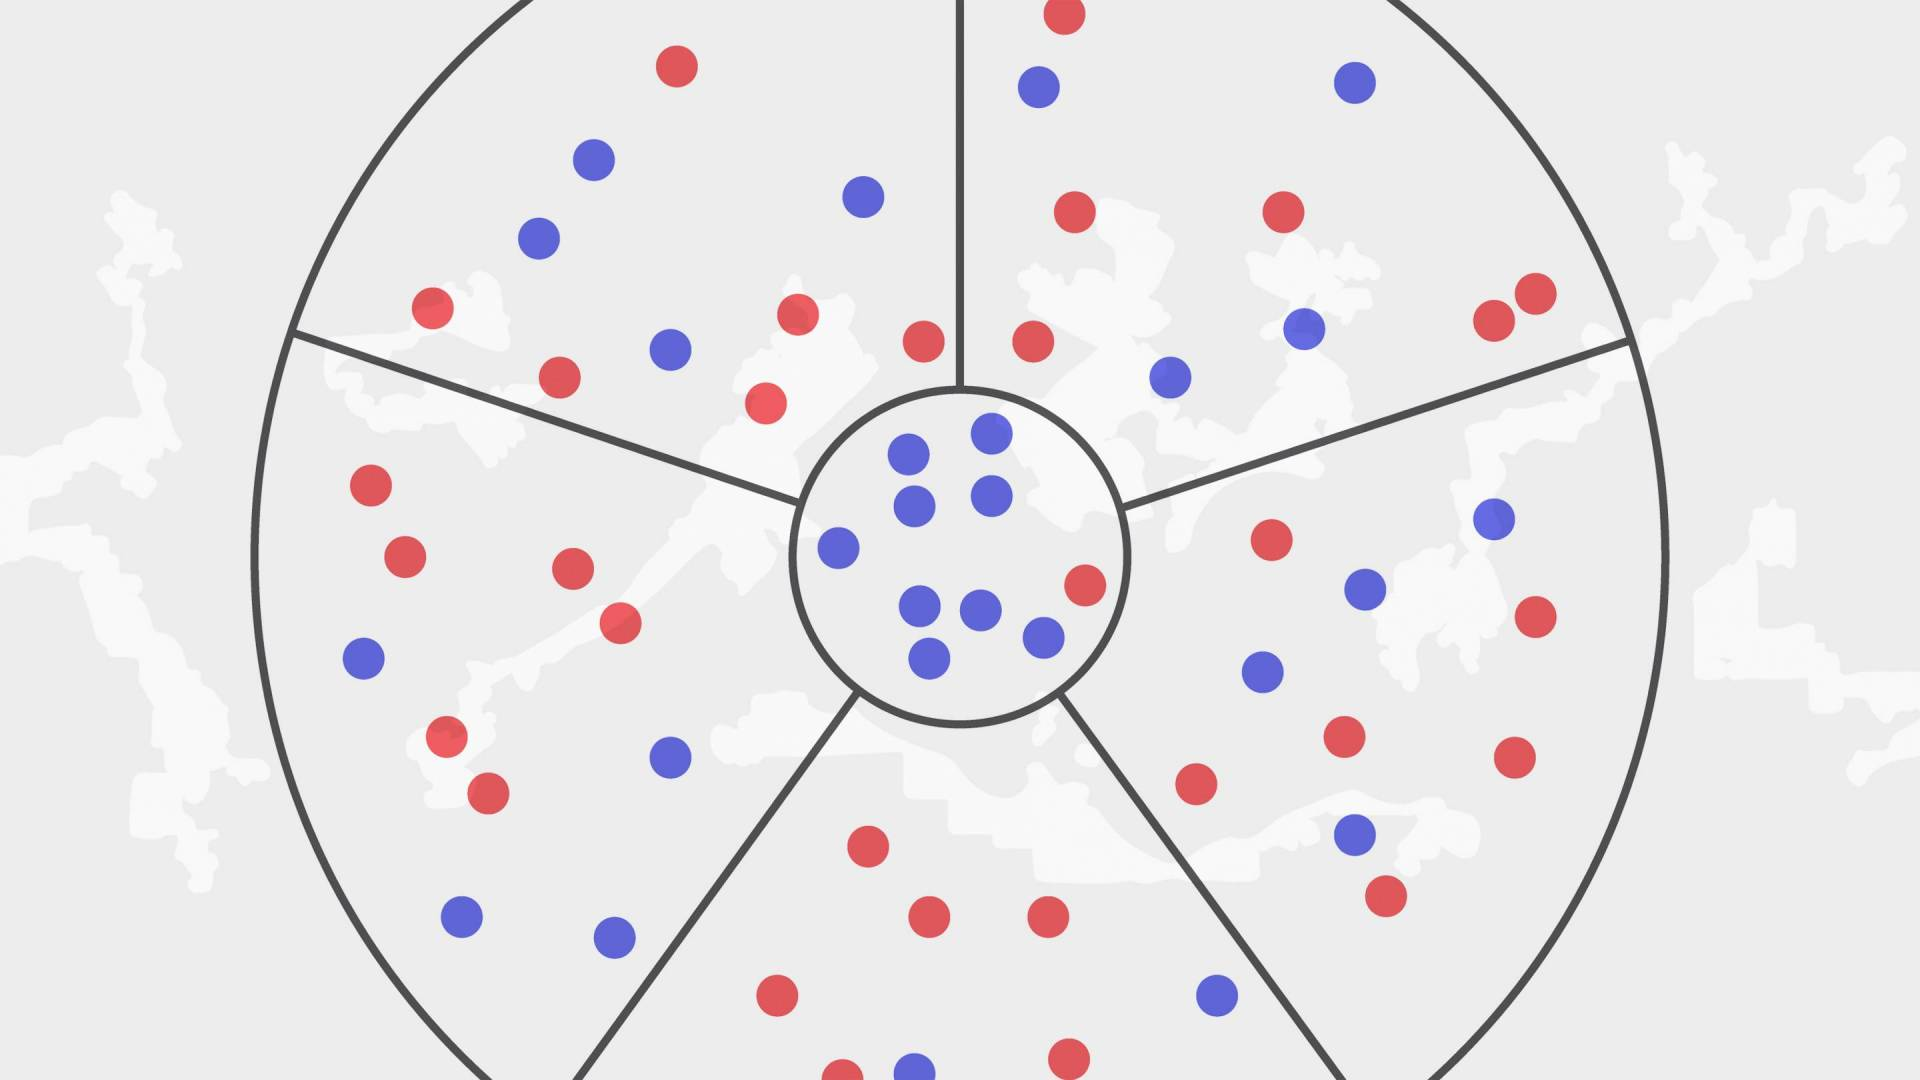 Graphic of red and blue dots being divided by lines